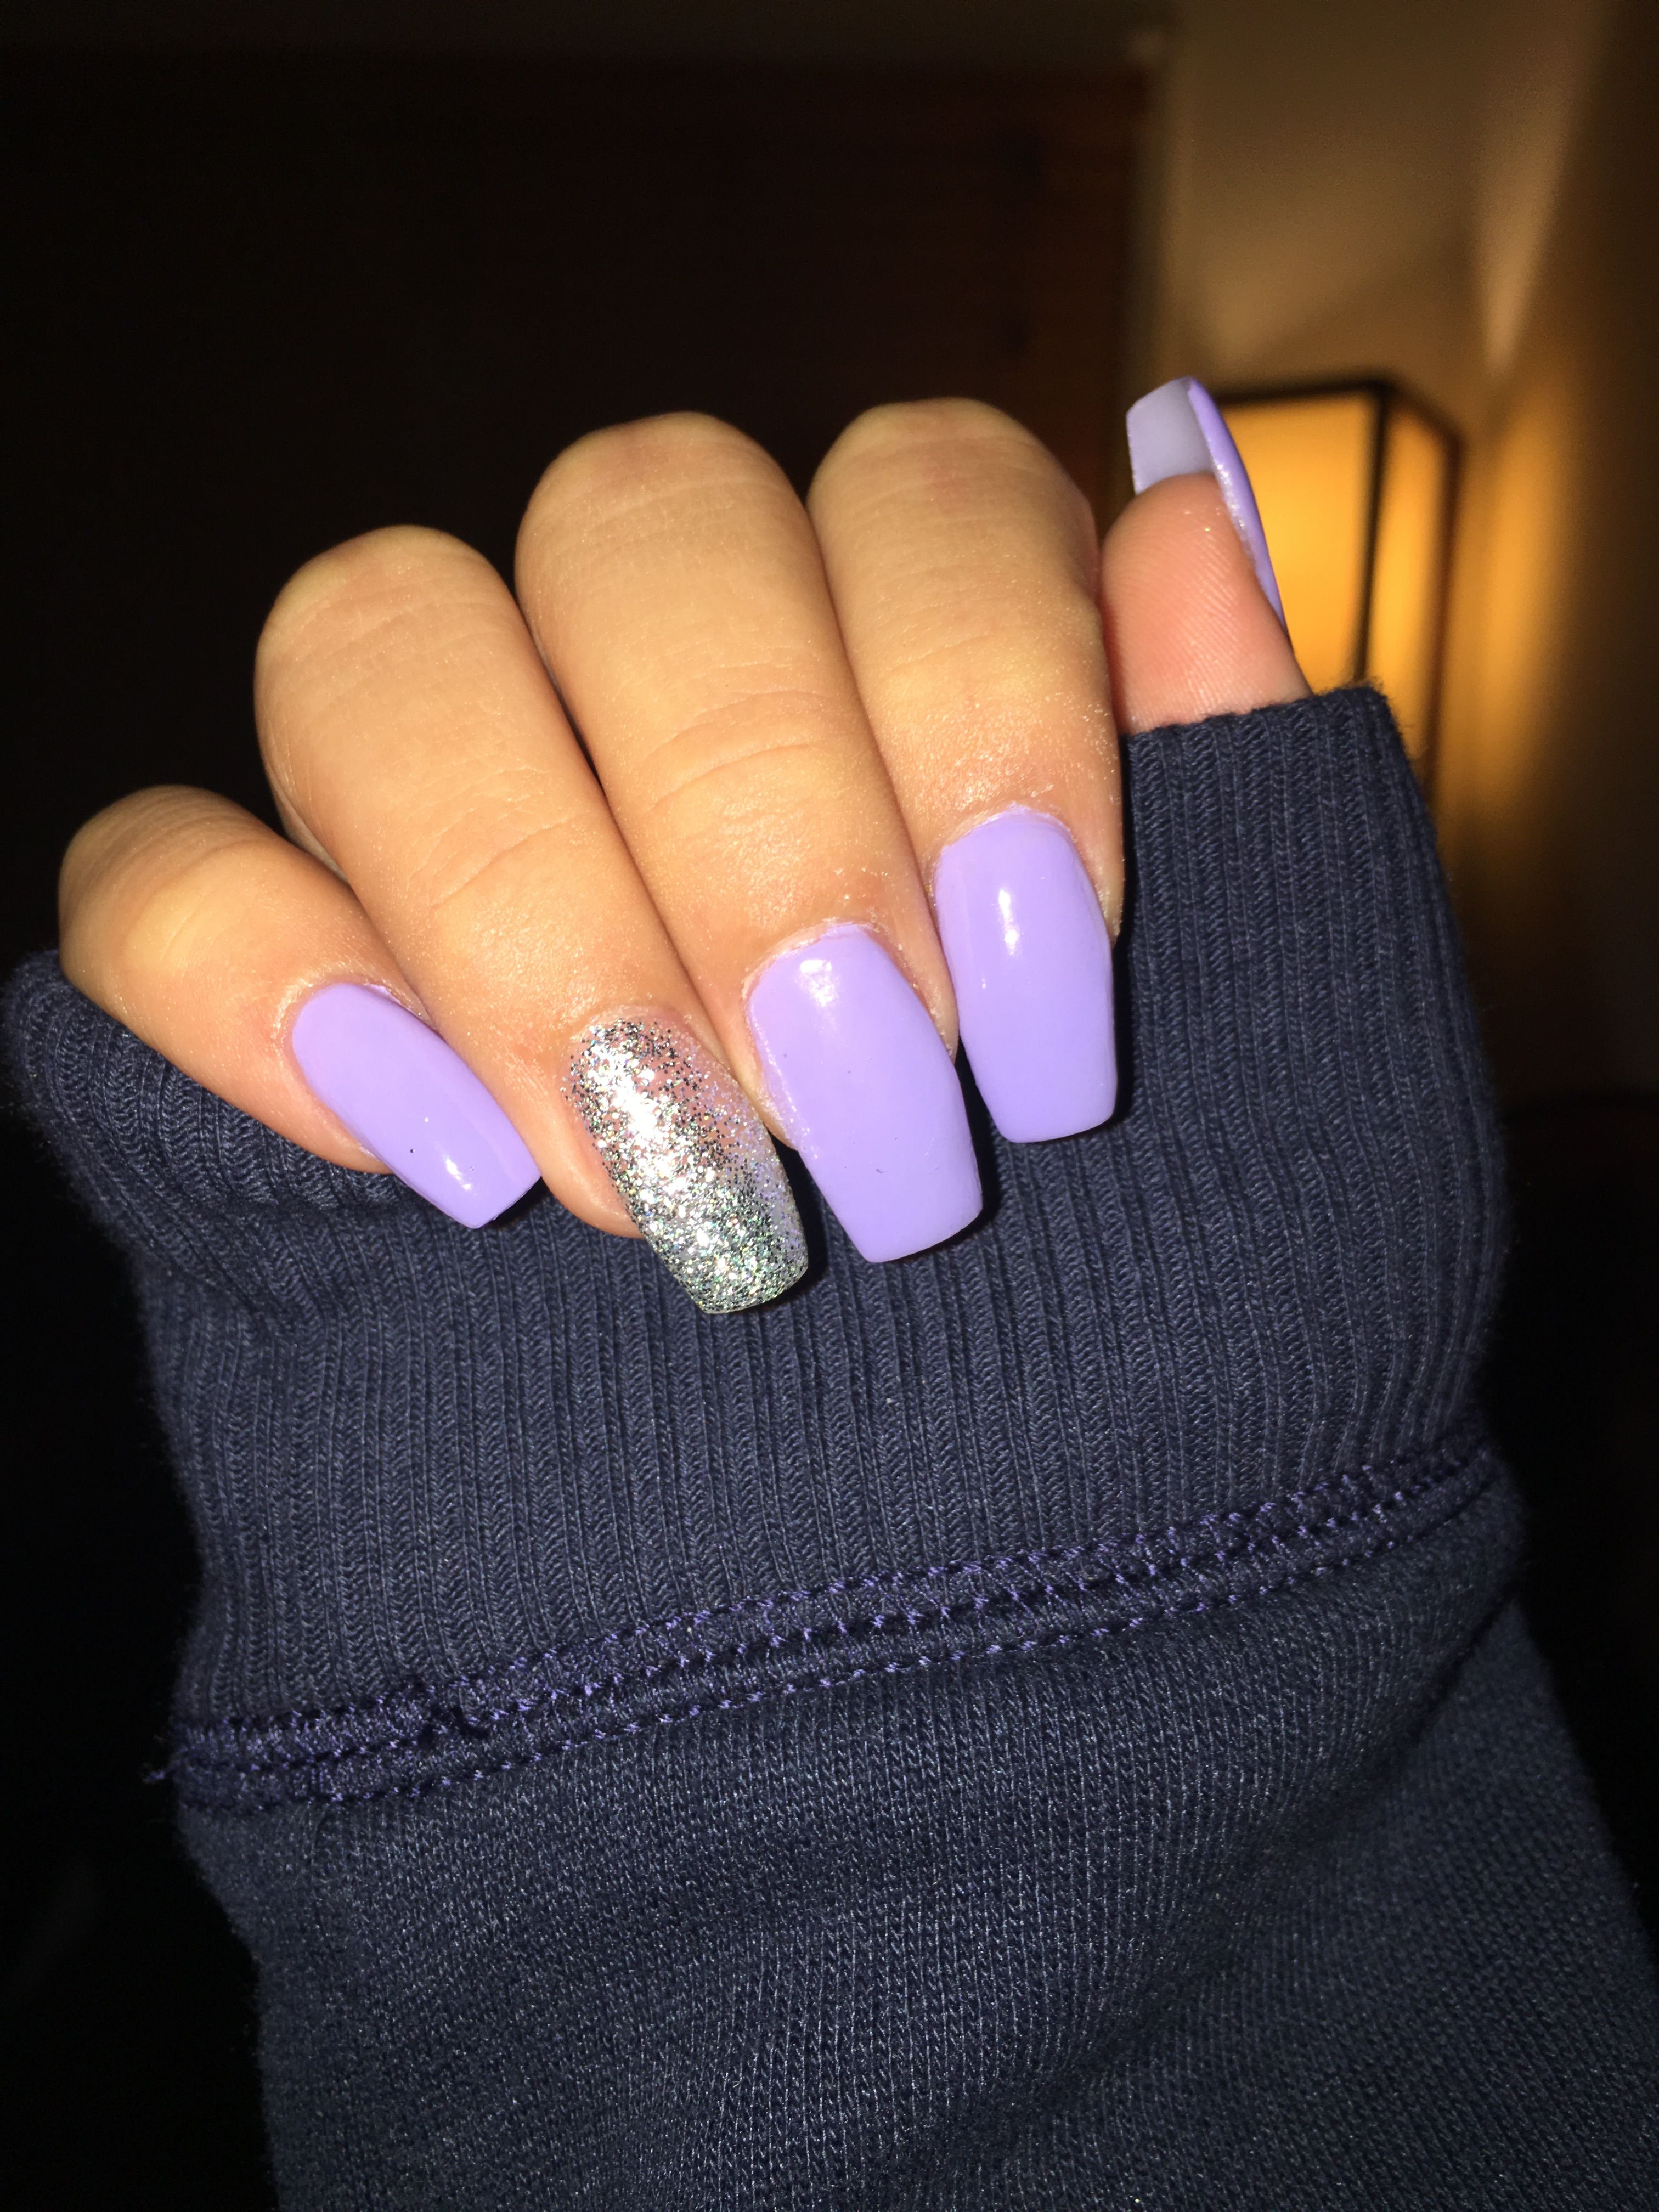 Lavender nails with glitter | n a i l $ | Pinterest ...